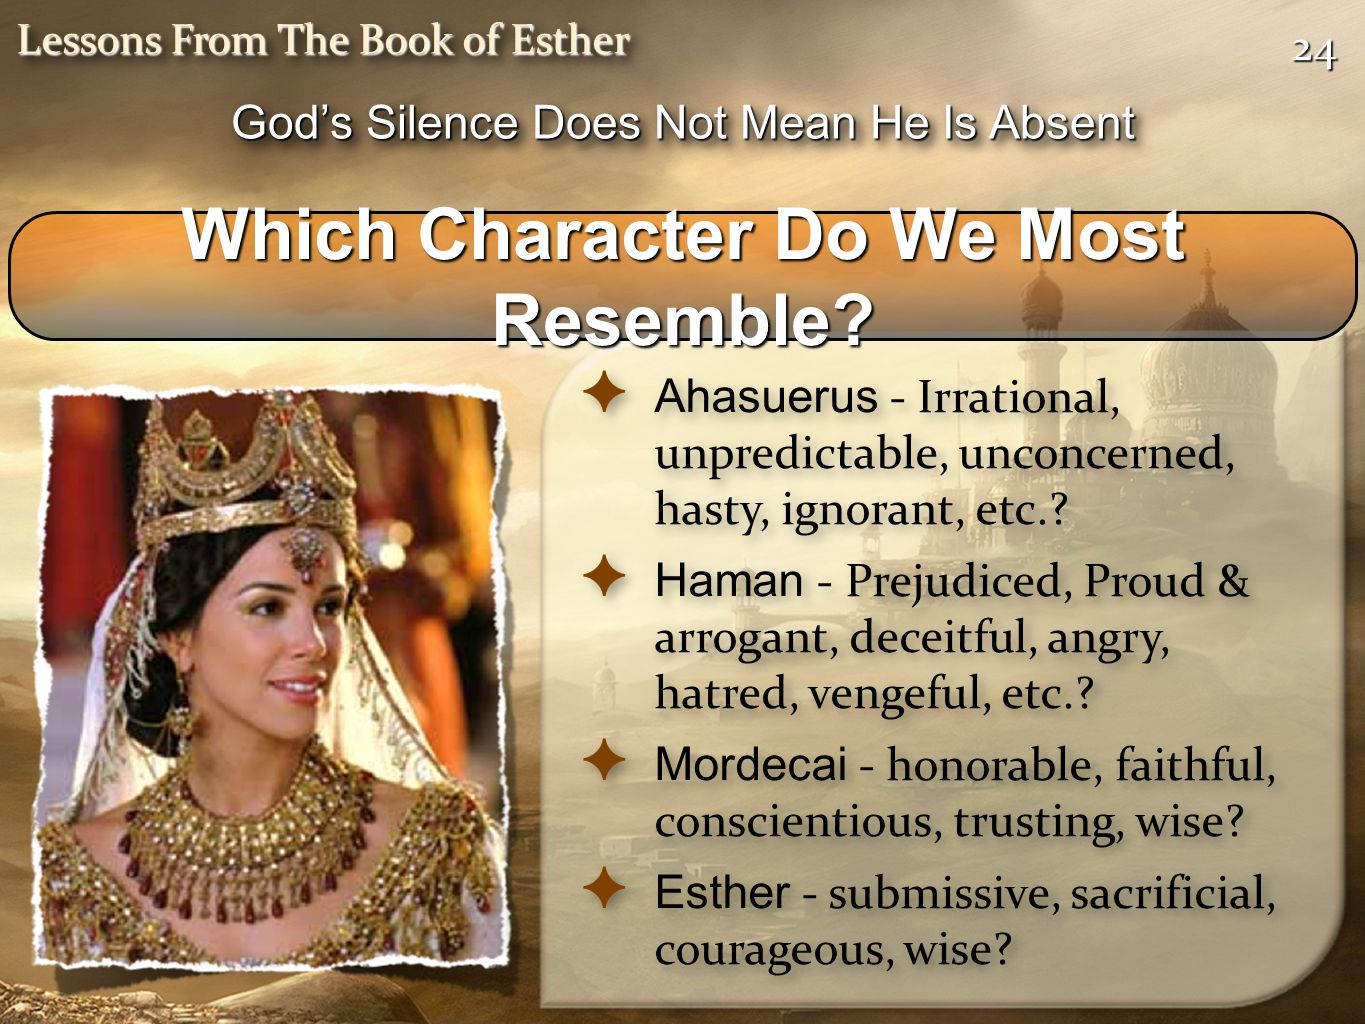 2424 Lessons From The Book of Esther ✦ Ahasuerus - Irrational, unpredictable, unconcerned, hasty, ignorant, etc..